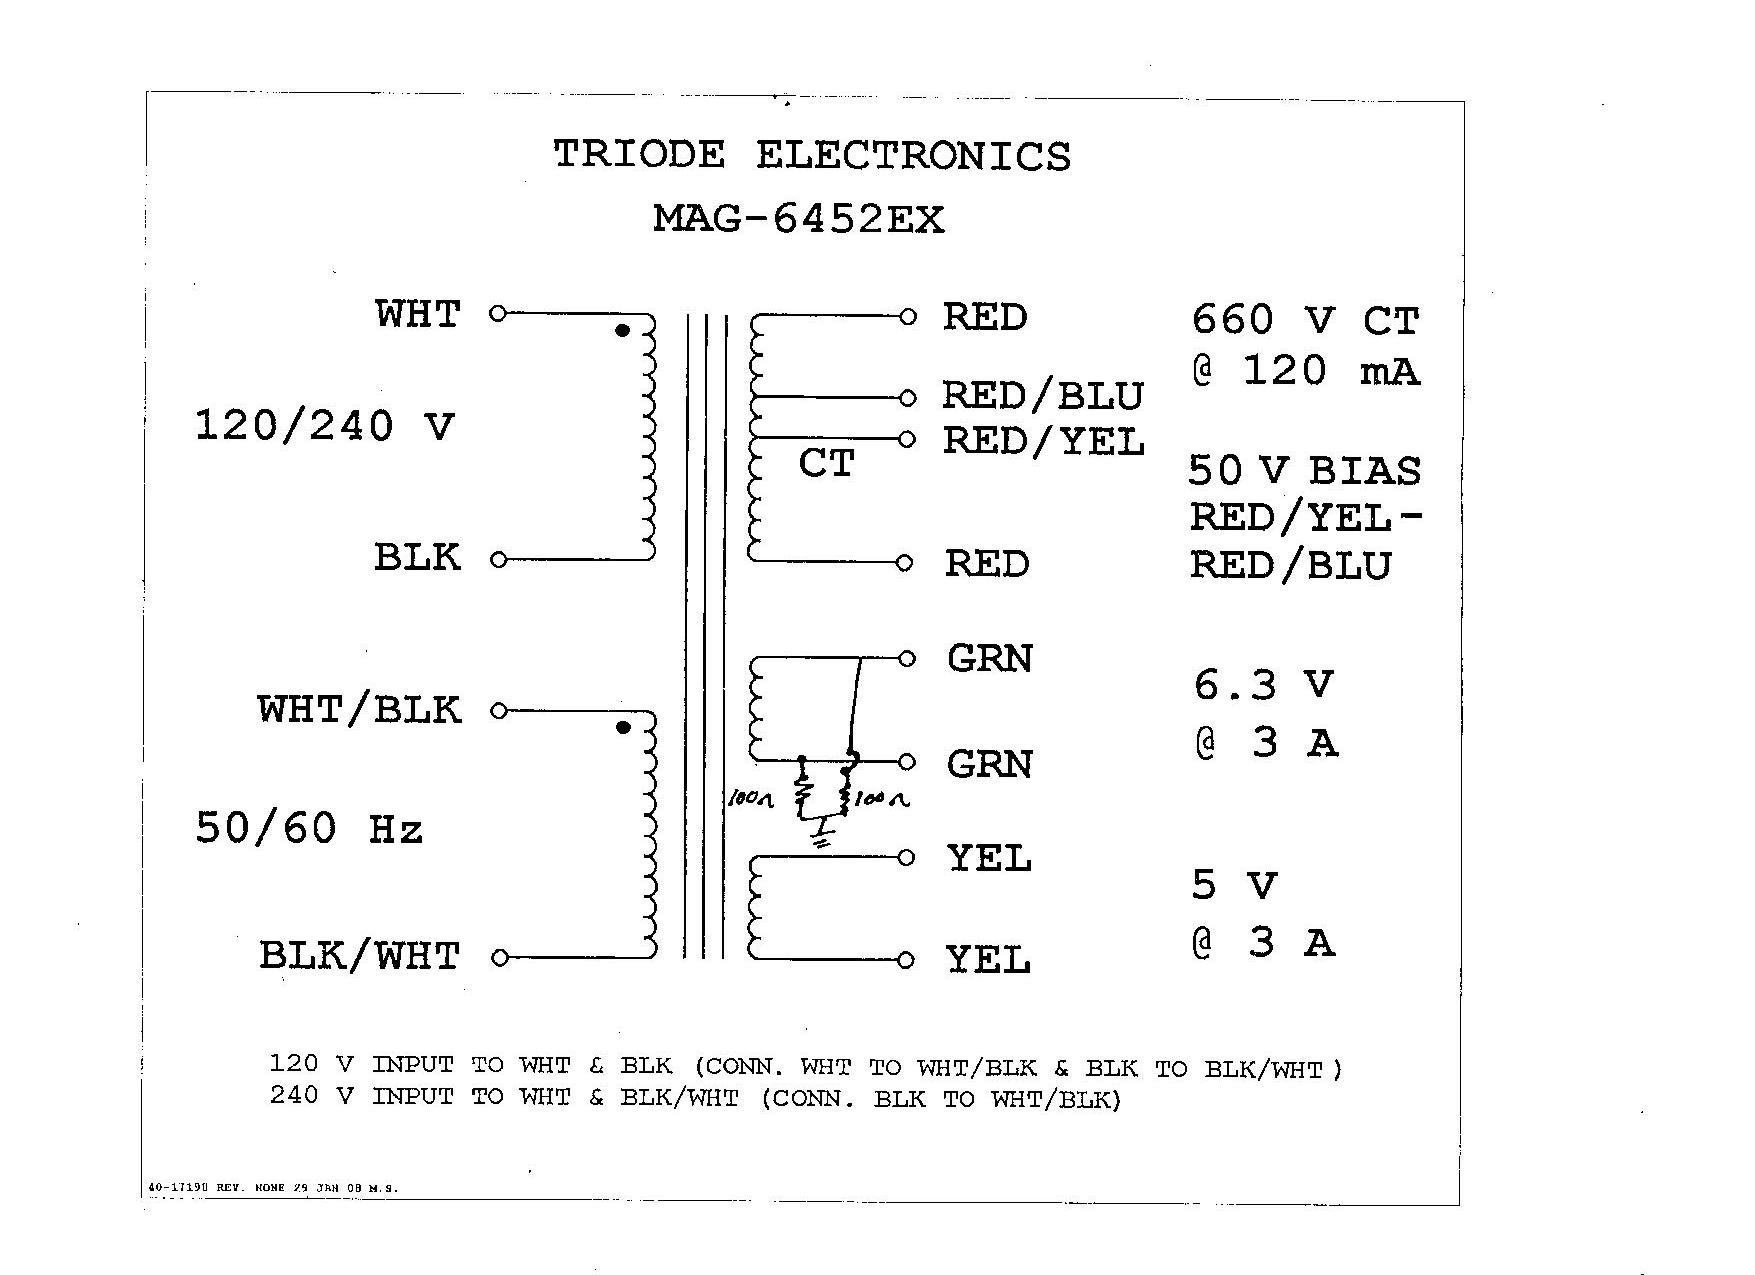 480v to 120v transformer wiring diagram online wiring diagram 480V to 450V Transformer Diagram 120v transformer wiring diagram wiring diagram 480v to 120v control transformer wiring diagram 240 single phase